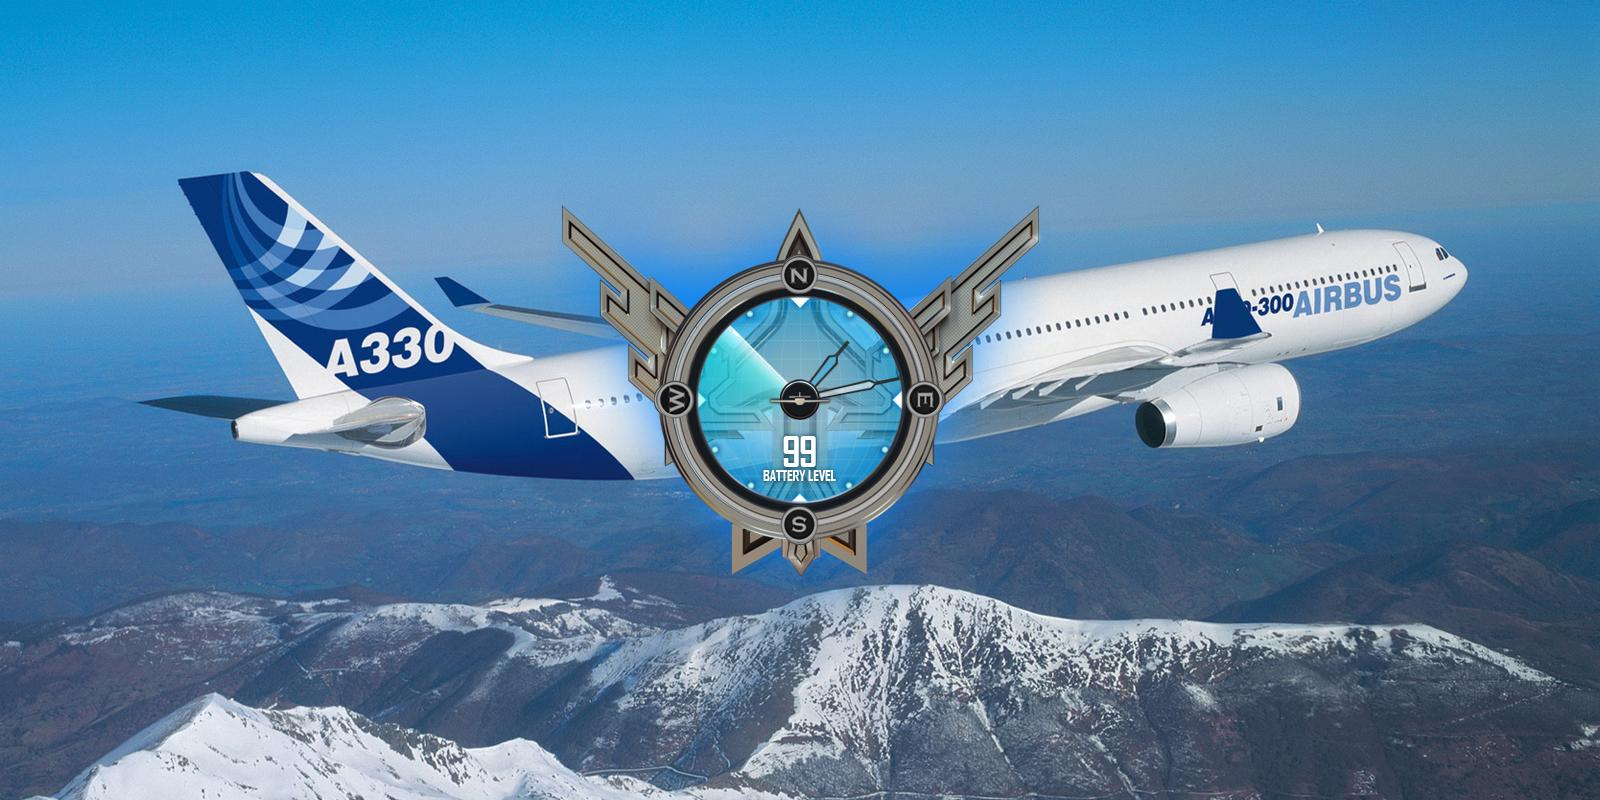 Airbus A330 Airplane Wallpaper- screenshot